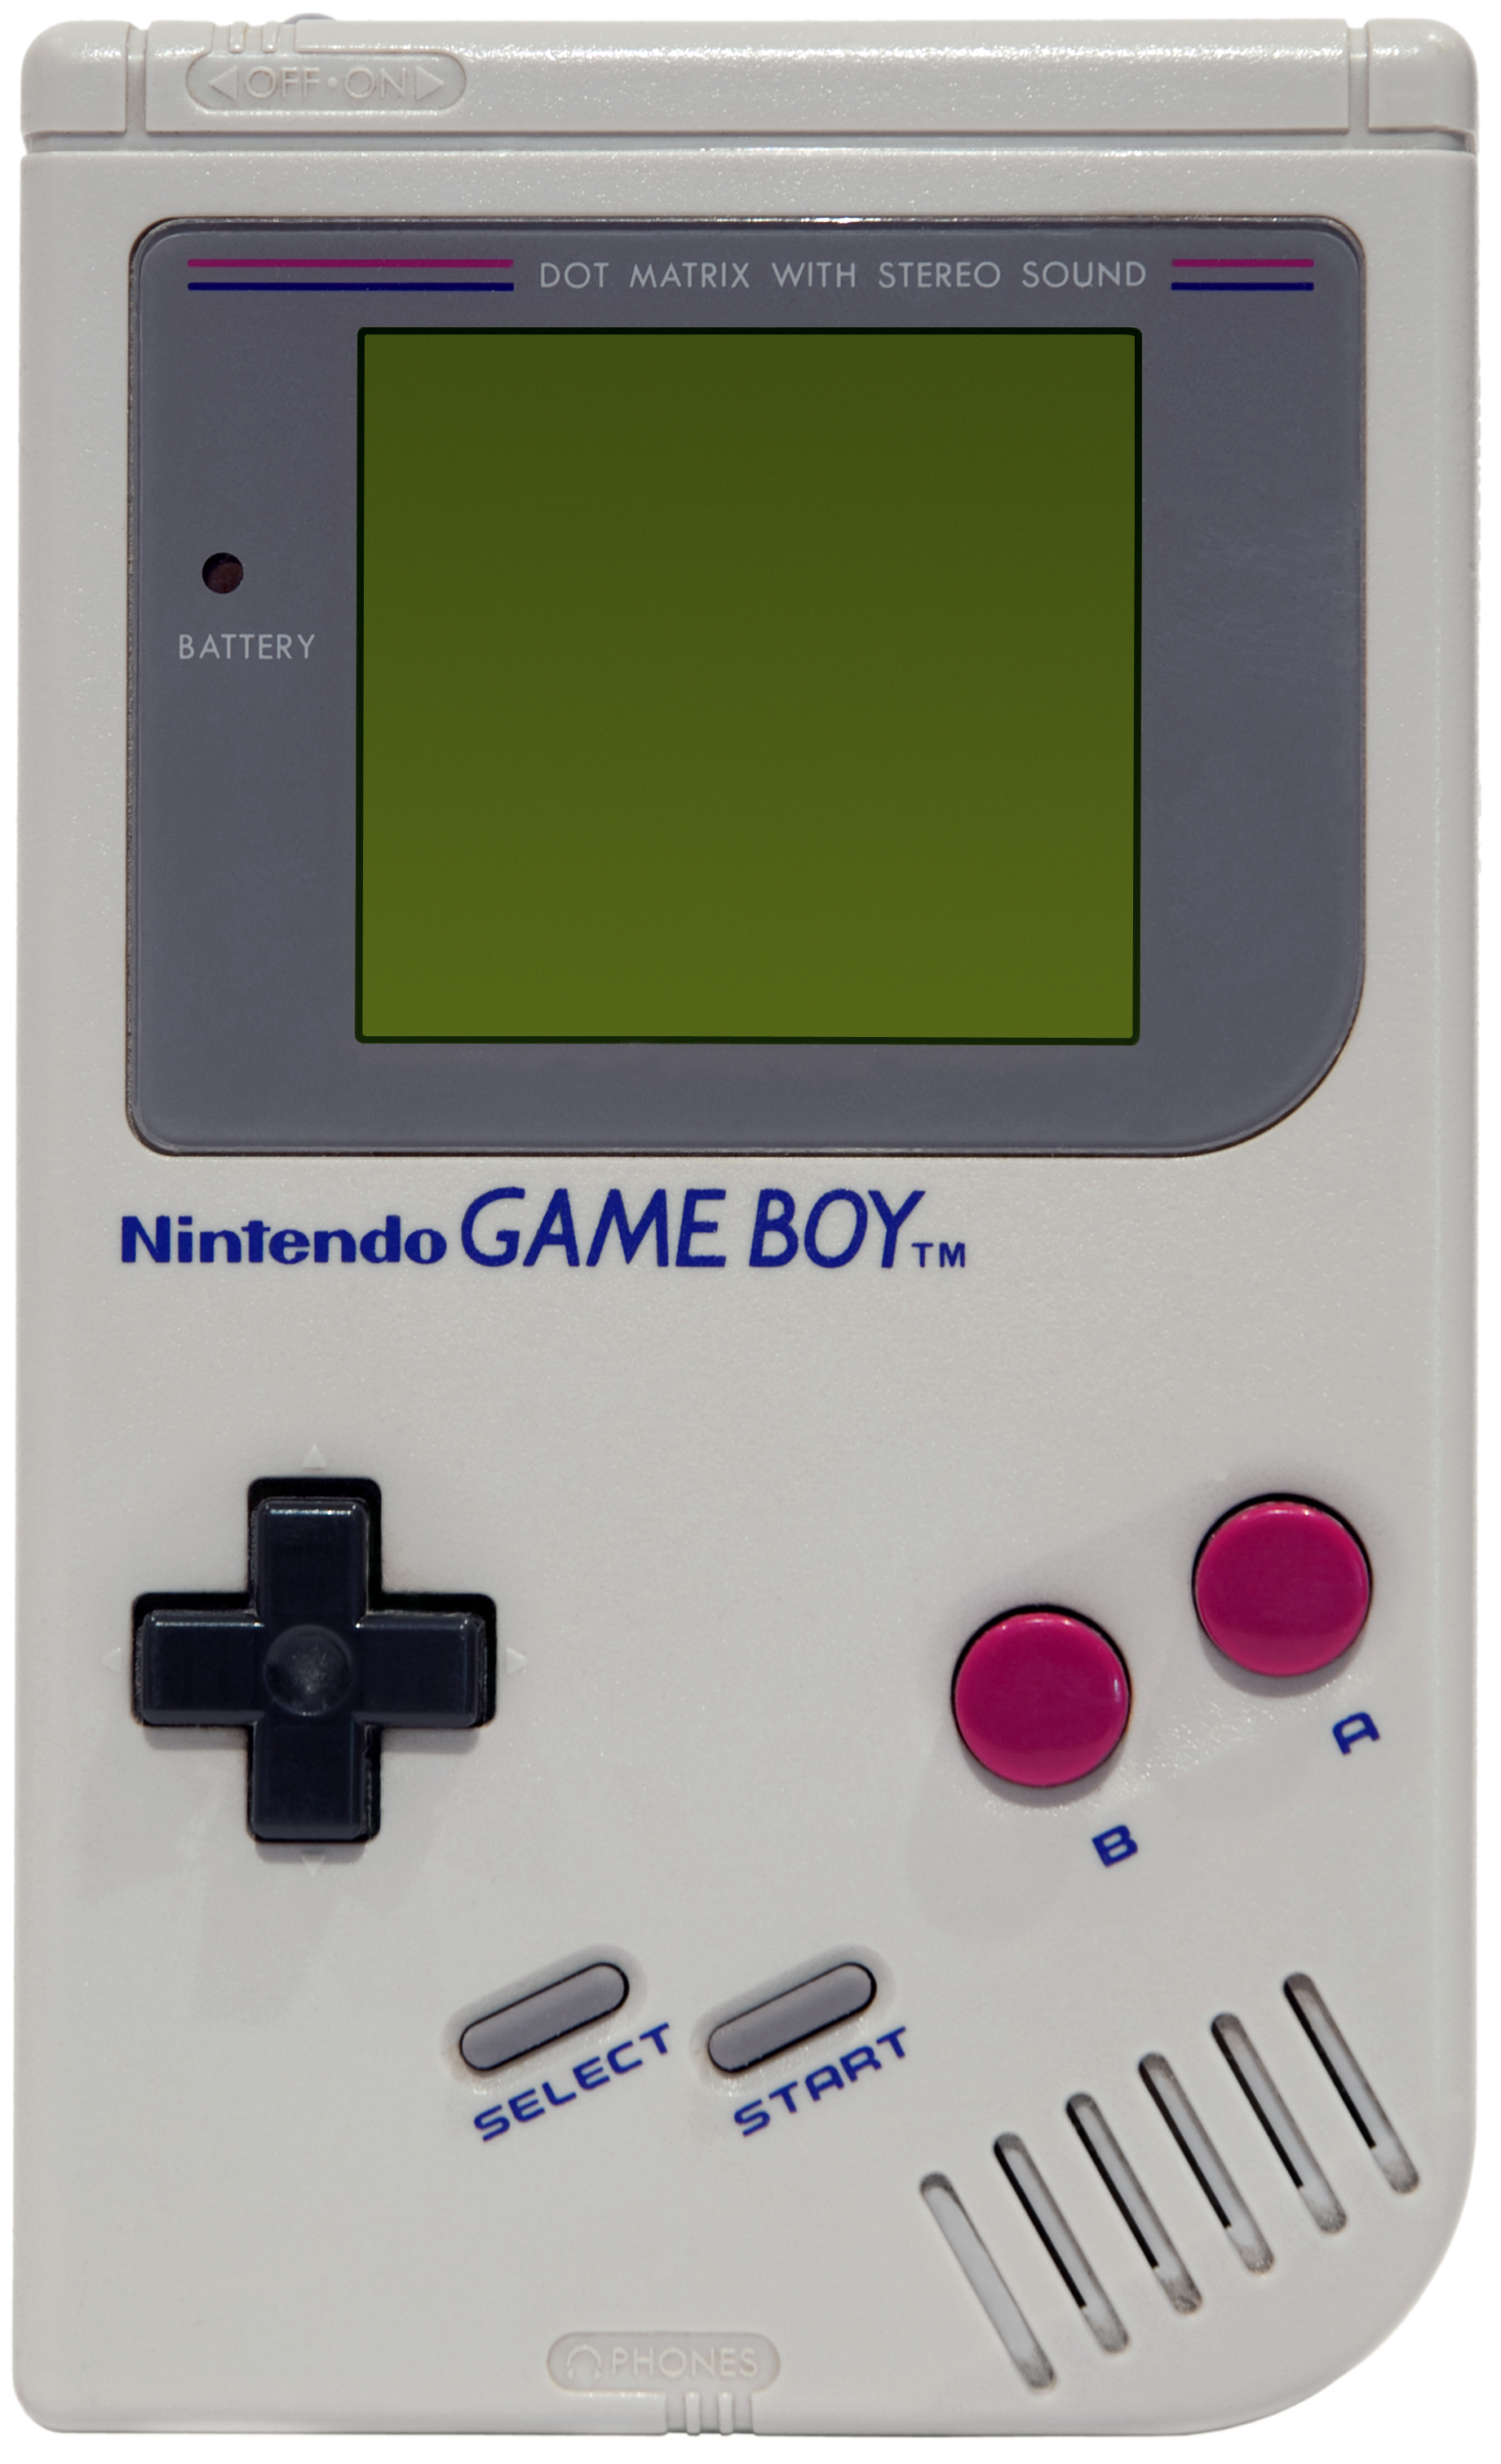 Nintendo: The Launch of Game Boy Color Case Solution & Analysis